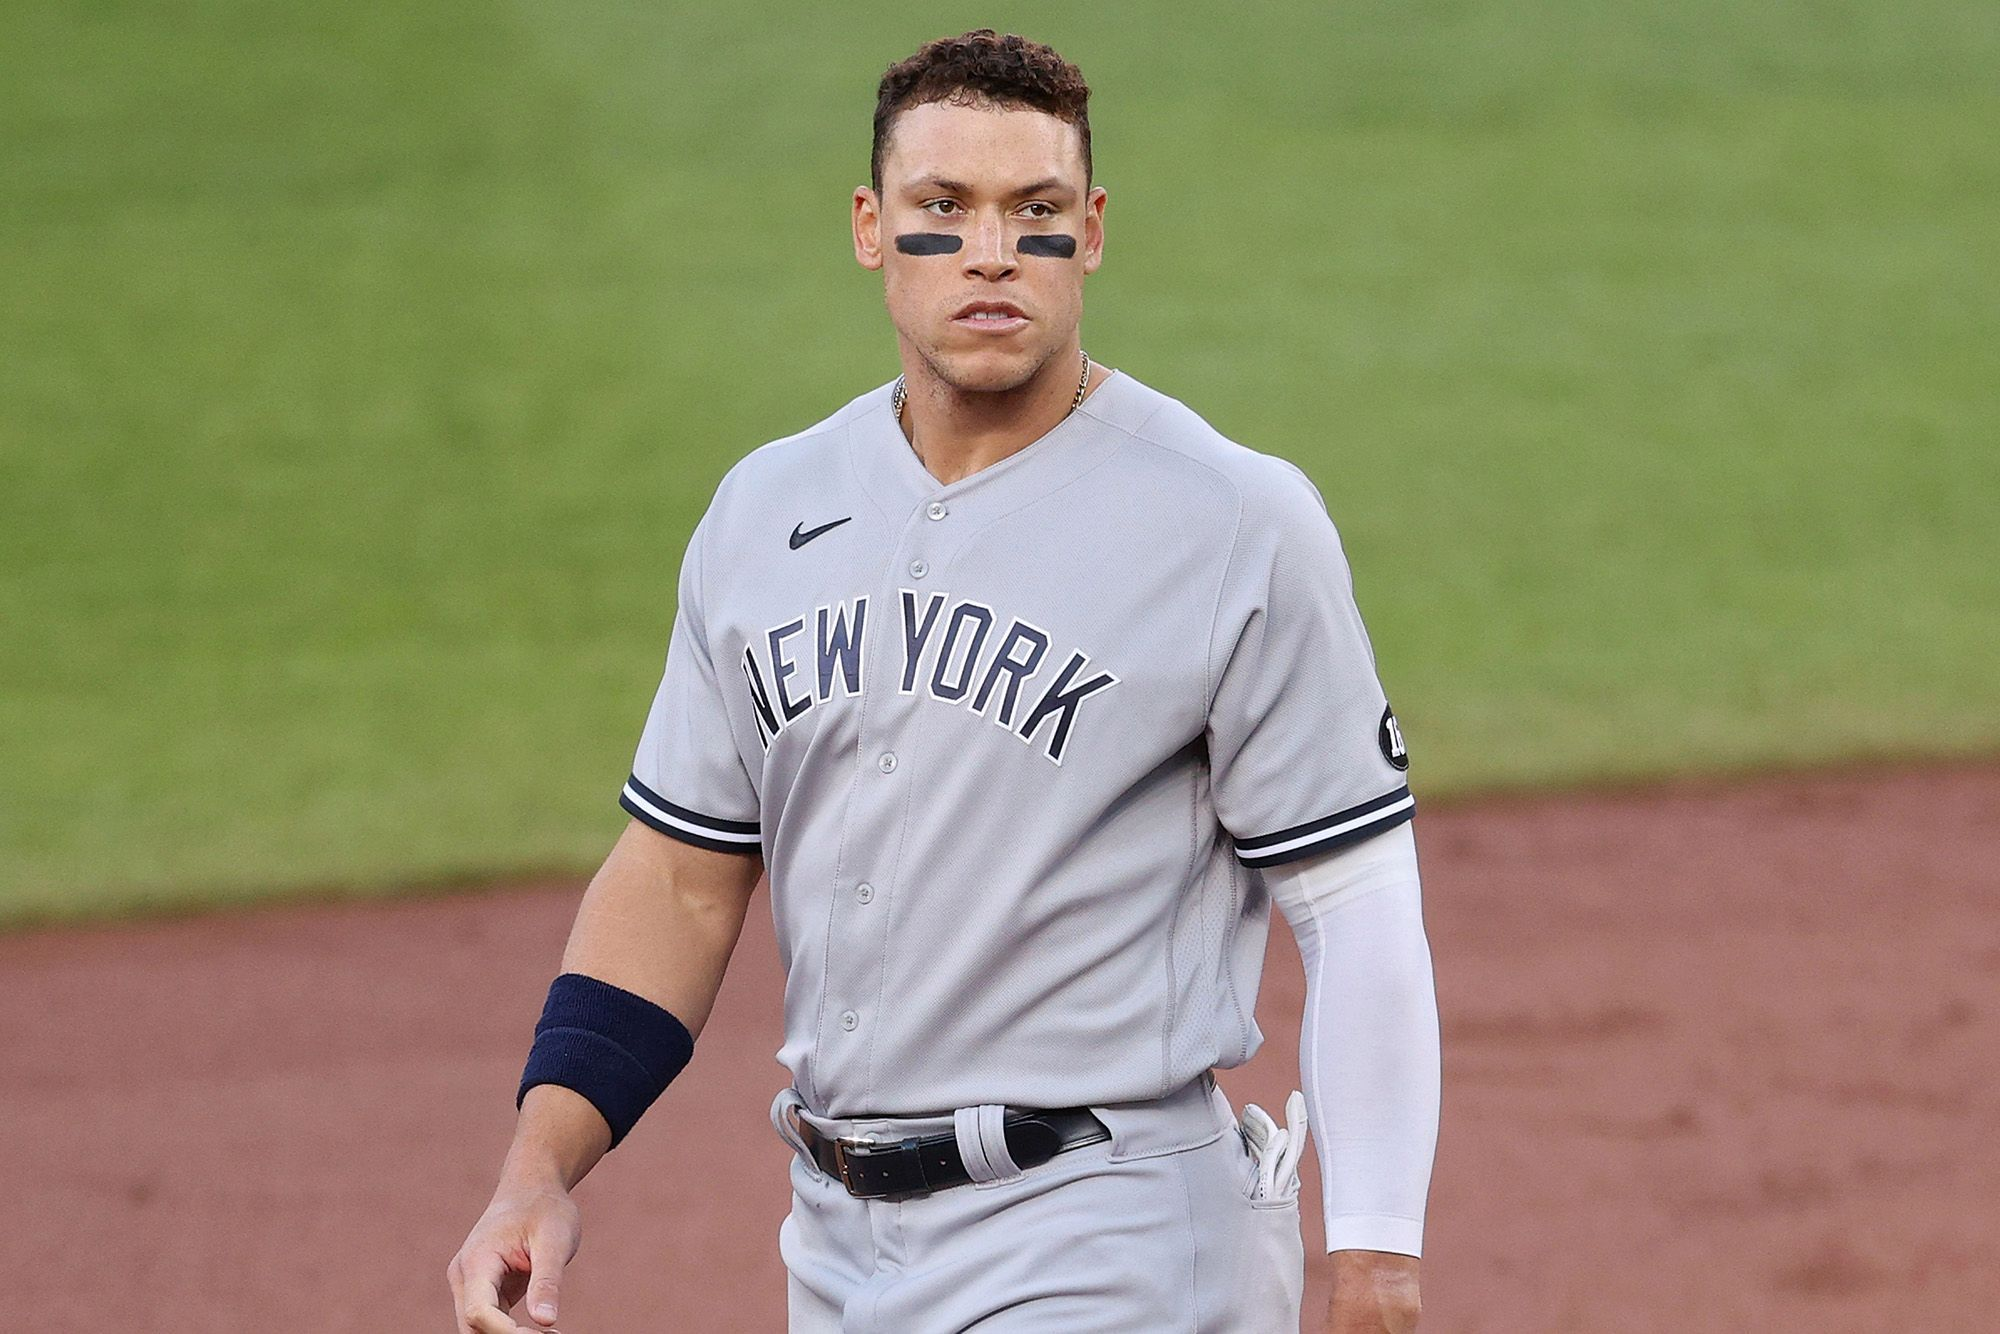 Yankees RF Aaron Judge placed on 10 Day IL after breaking right knee